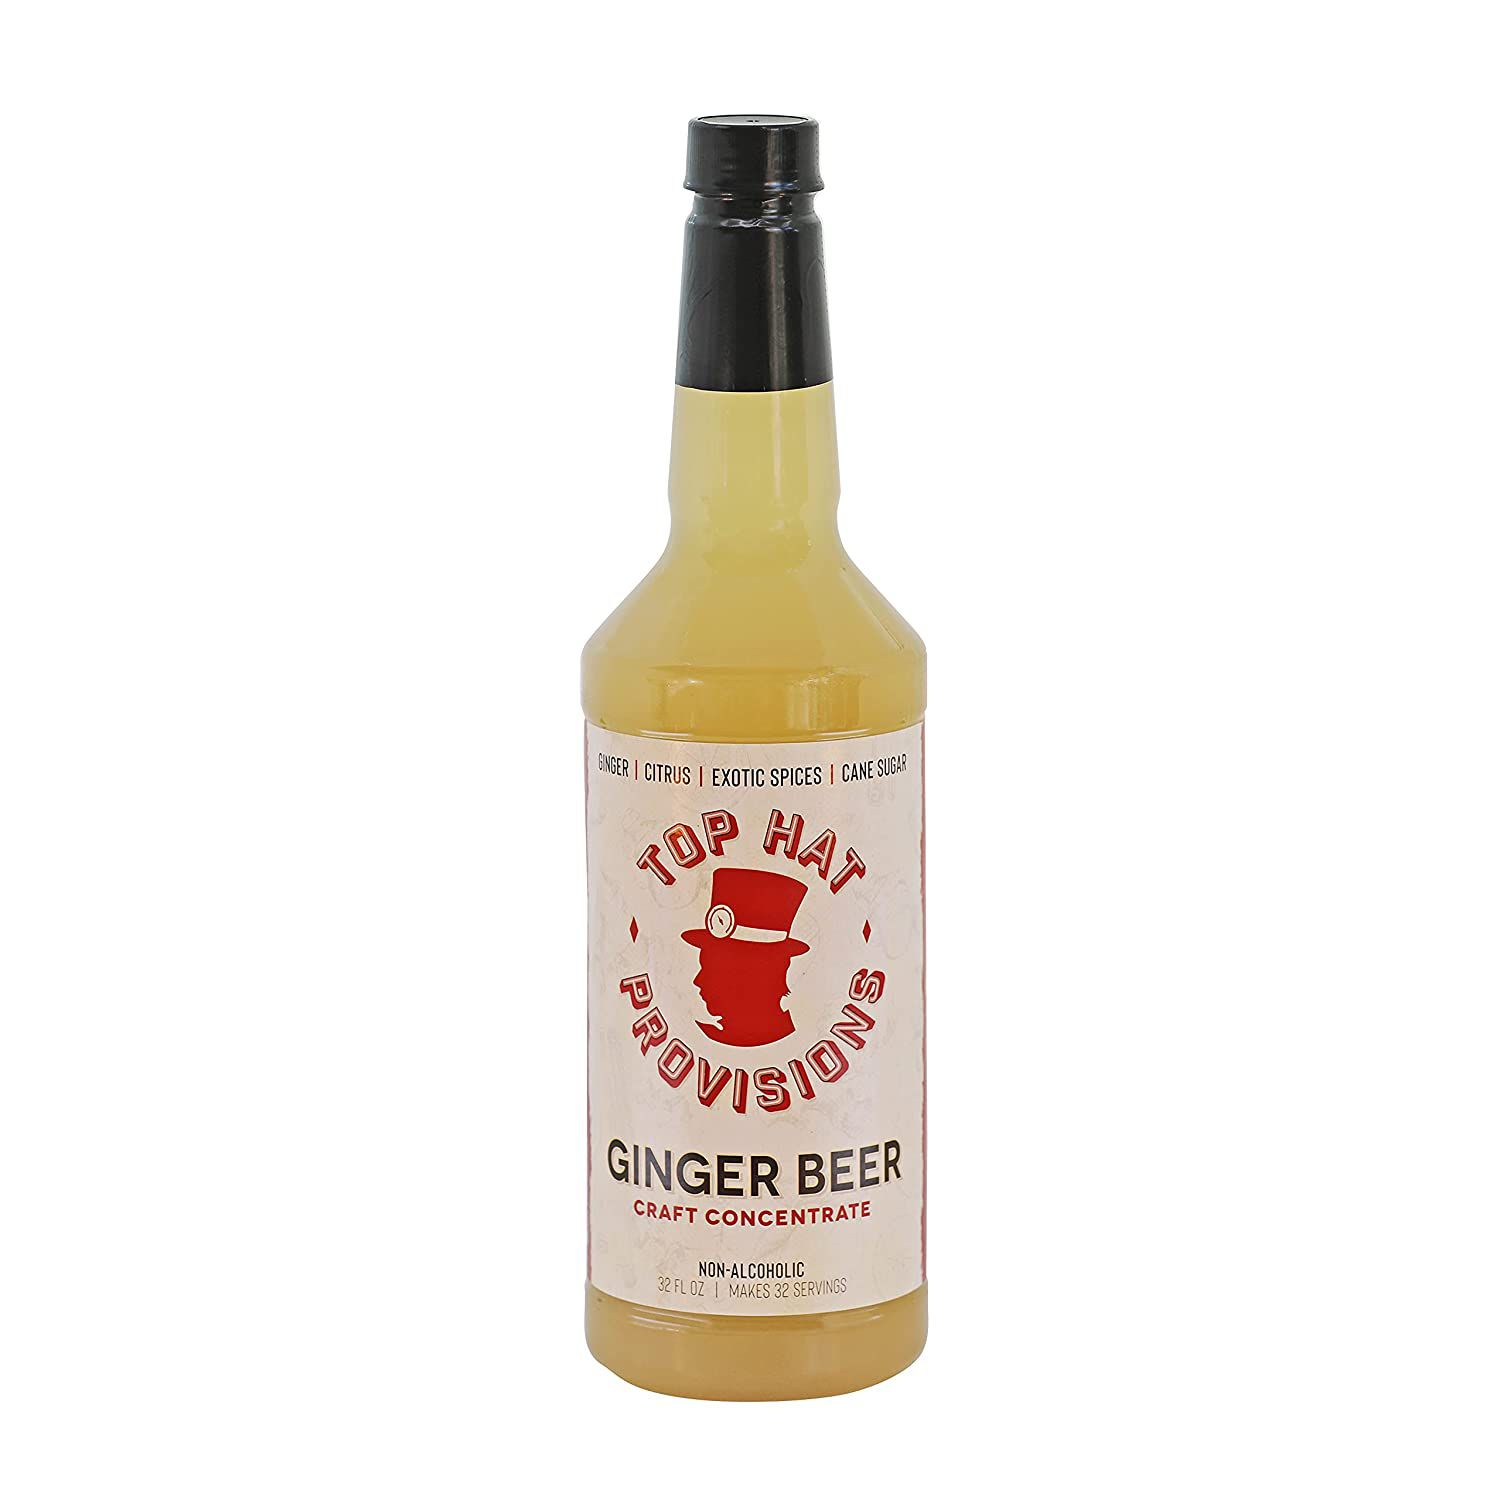 Top Hat Ginger Beer Craft Concentrate